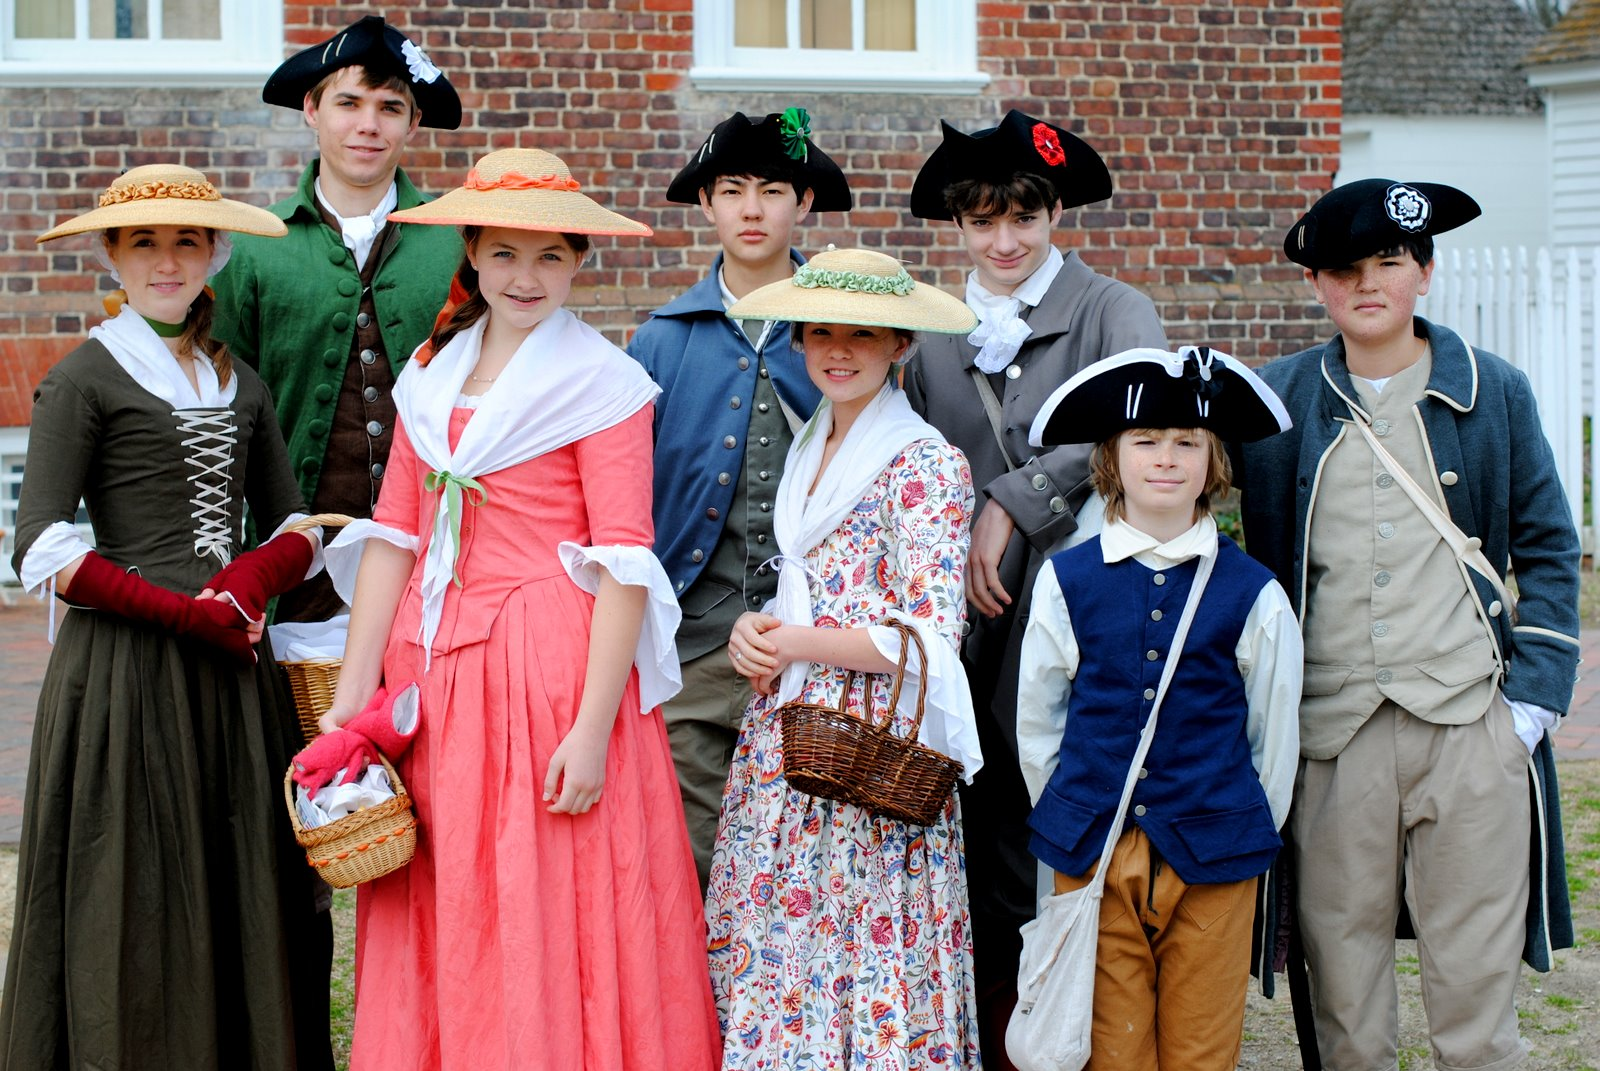 The Church Cook Colonial Williamsburg Part 1 Of 3